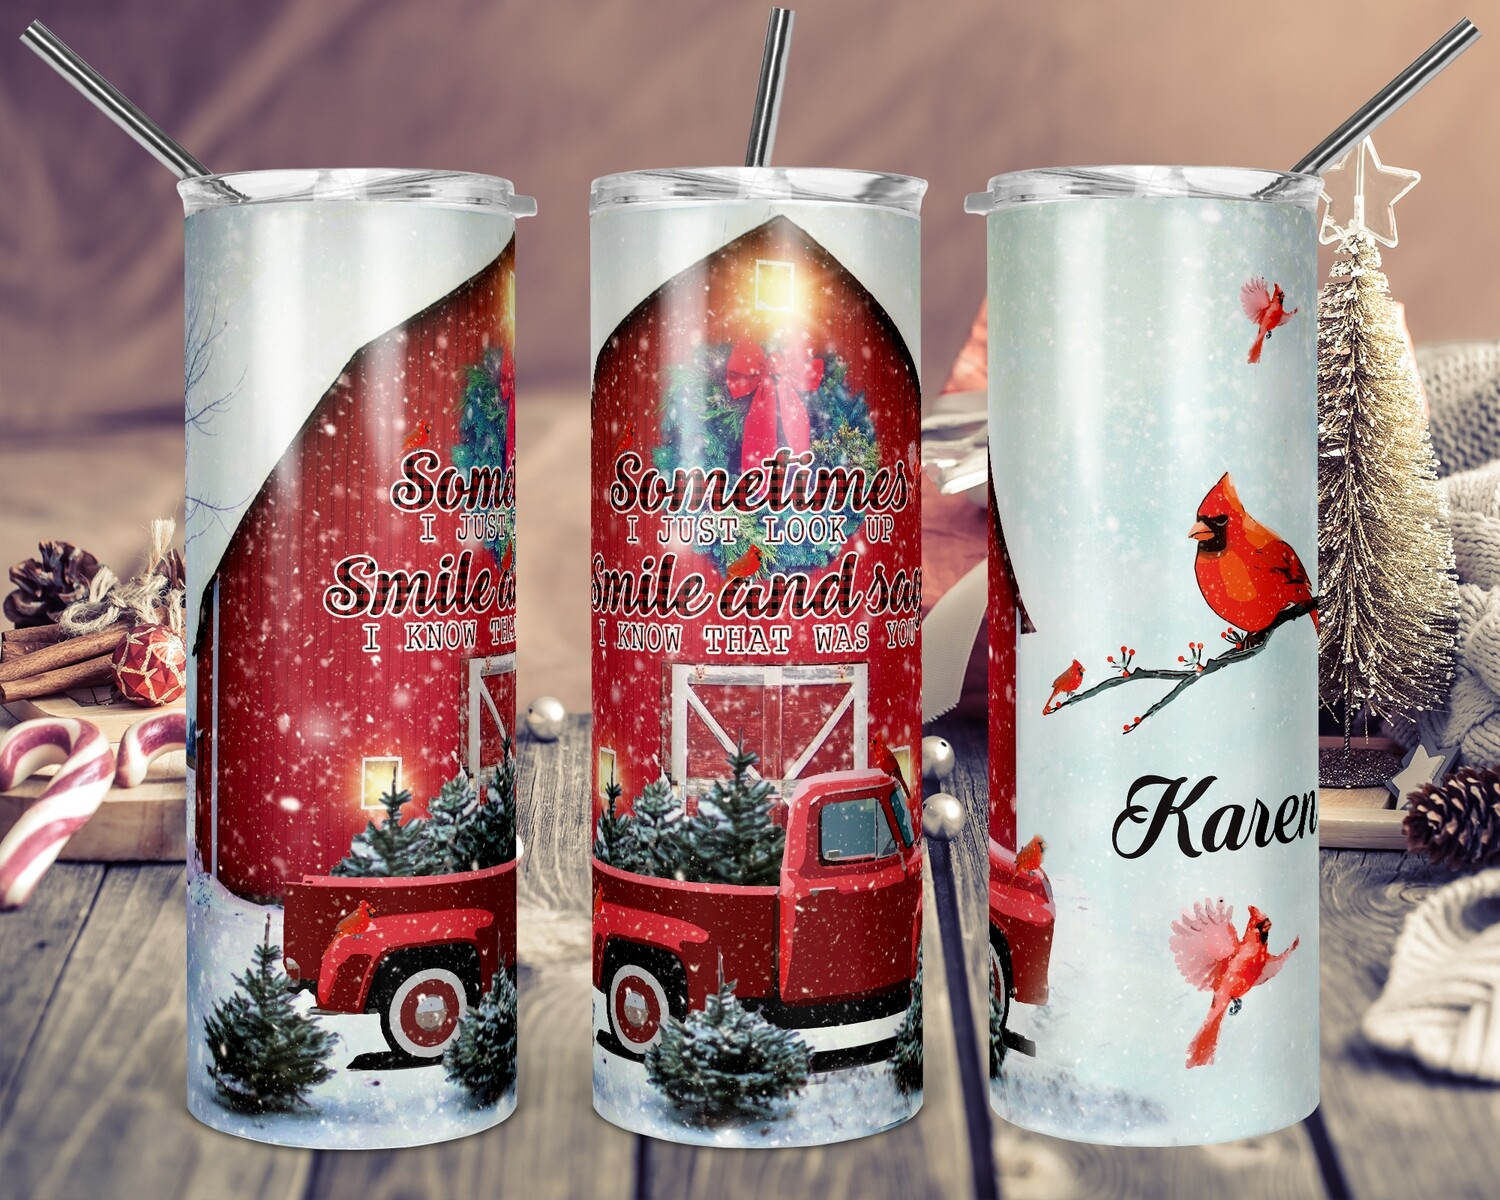 Sometimes I just Look Up Smile and Say Red Cardinal - 20oz & 30oz Skinny TUMBLER PNG Sublimation